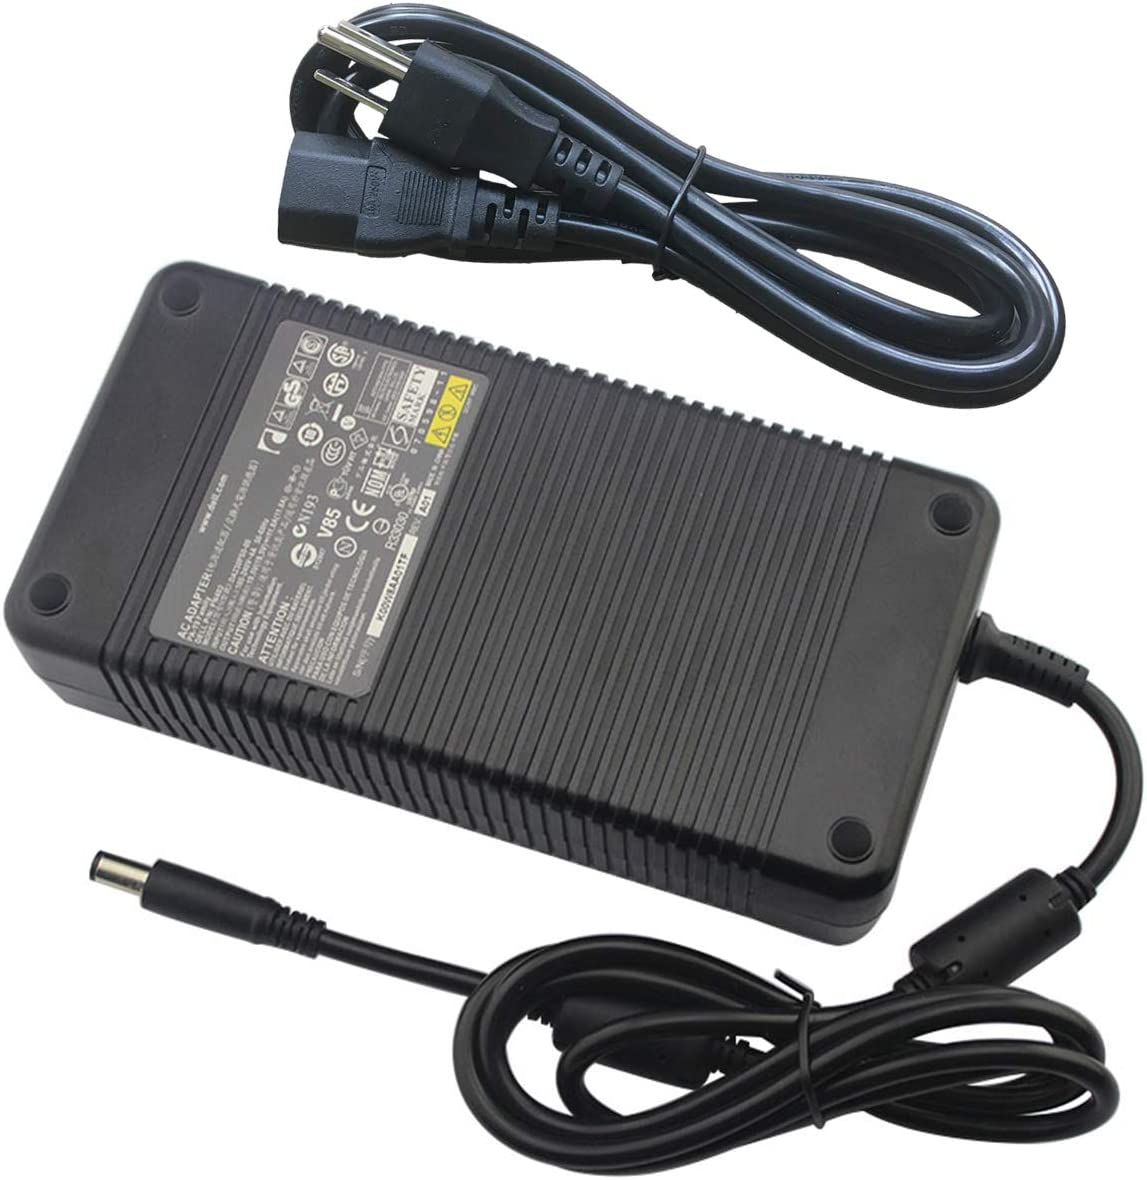 Genuine 19.5V 10.8A AC Adapter for Dell Precision M6400,M6500,Alienware M17XR2,M17X,D846D,M7820,DA210PE1-00,PA-7E,y044m,0Y044M Power Supply Charger Adaptor 210W